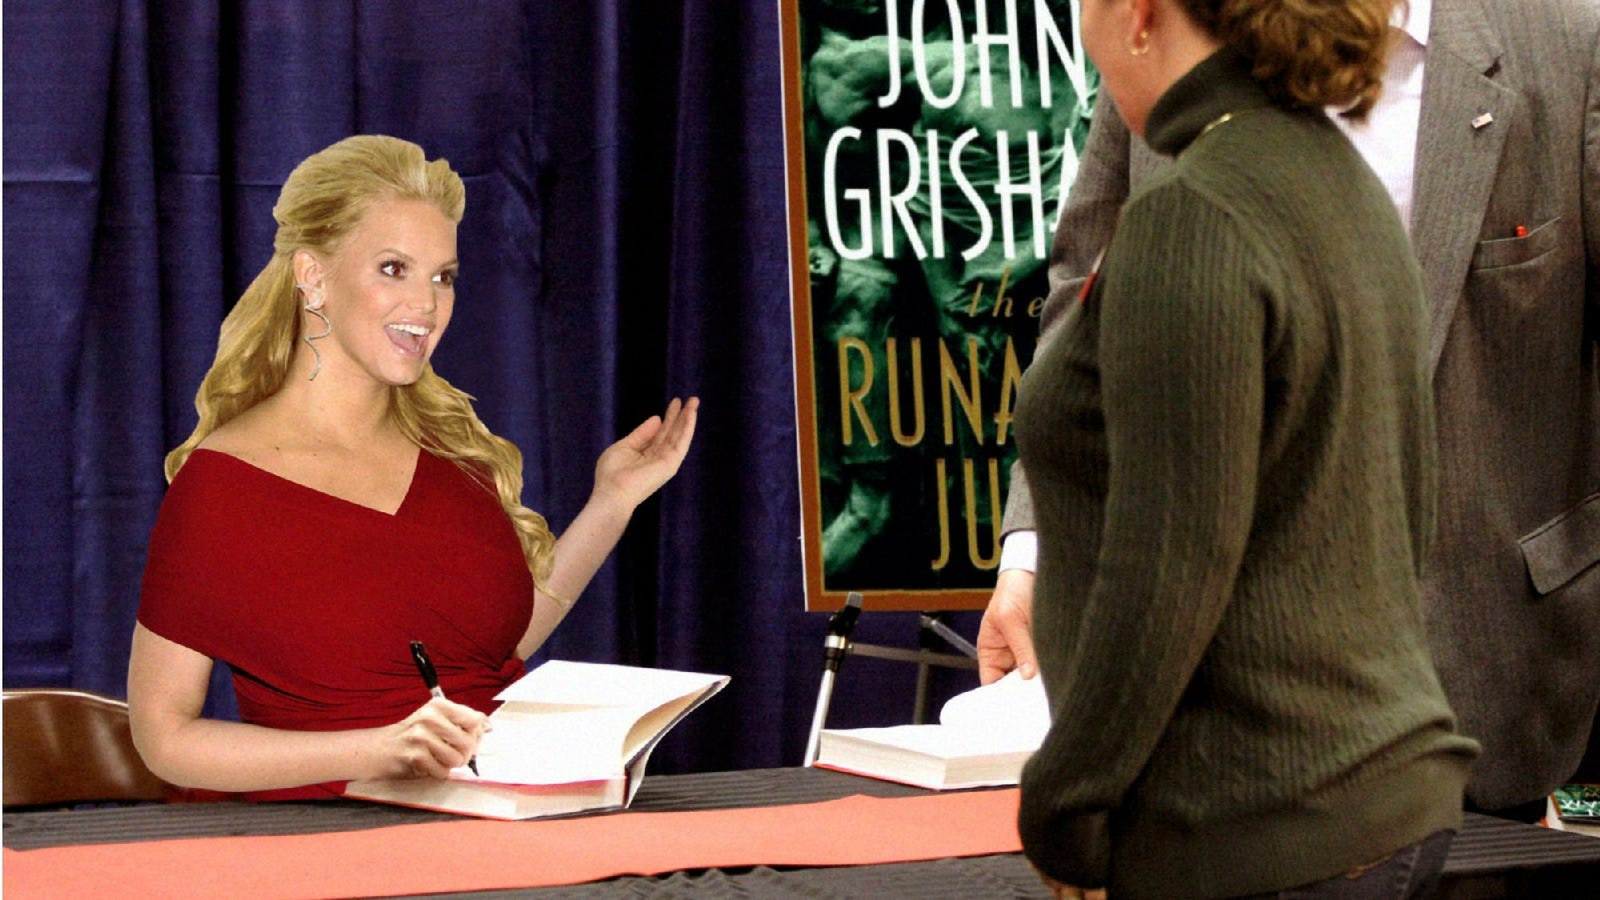 Jessica Simpson Goes On Tour To Promote The Novel She Read